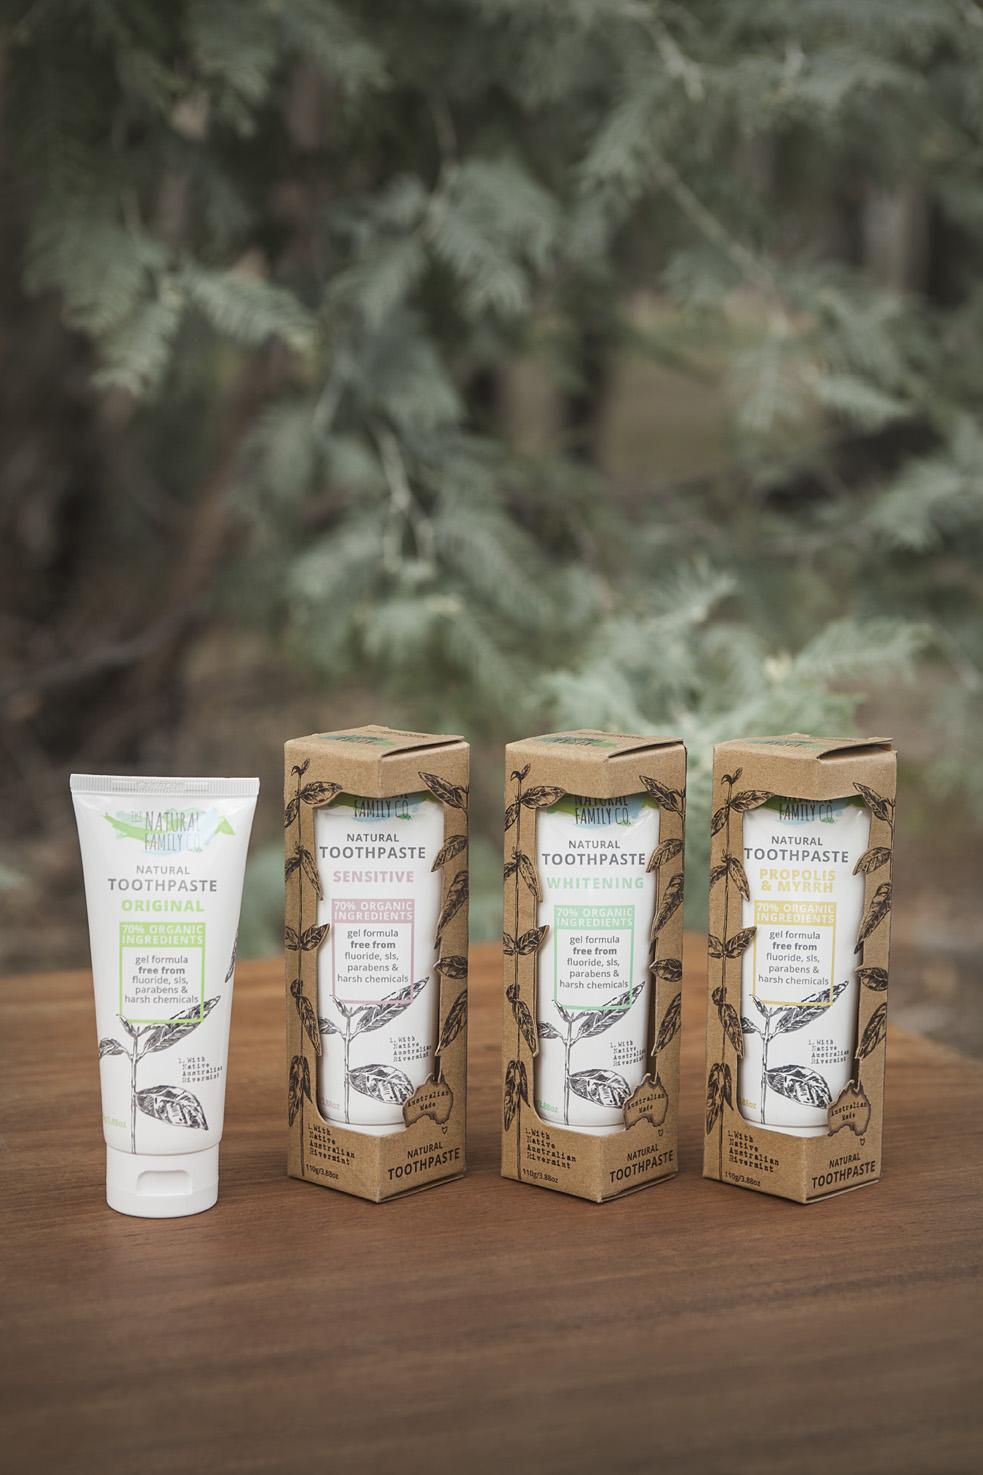 Eco friendly- Everyday lifestyle products